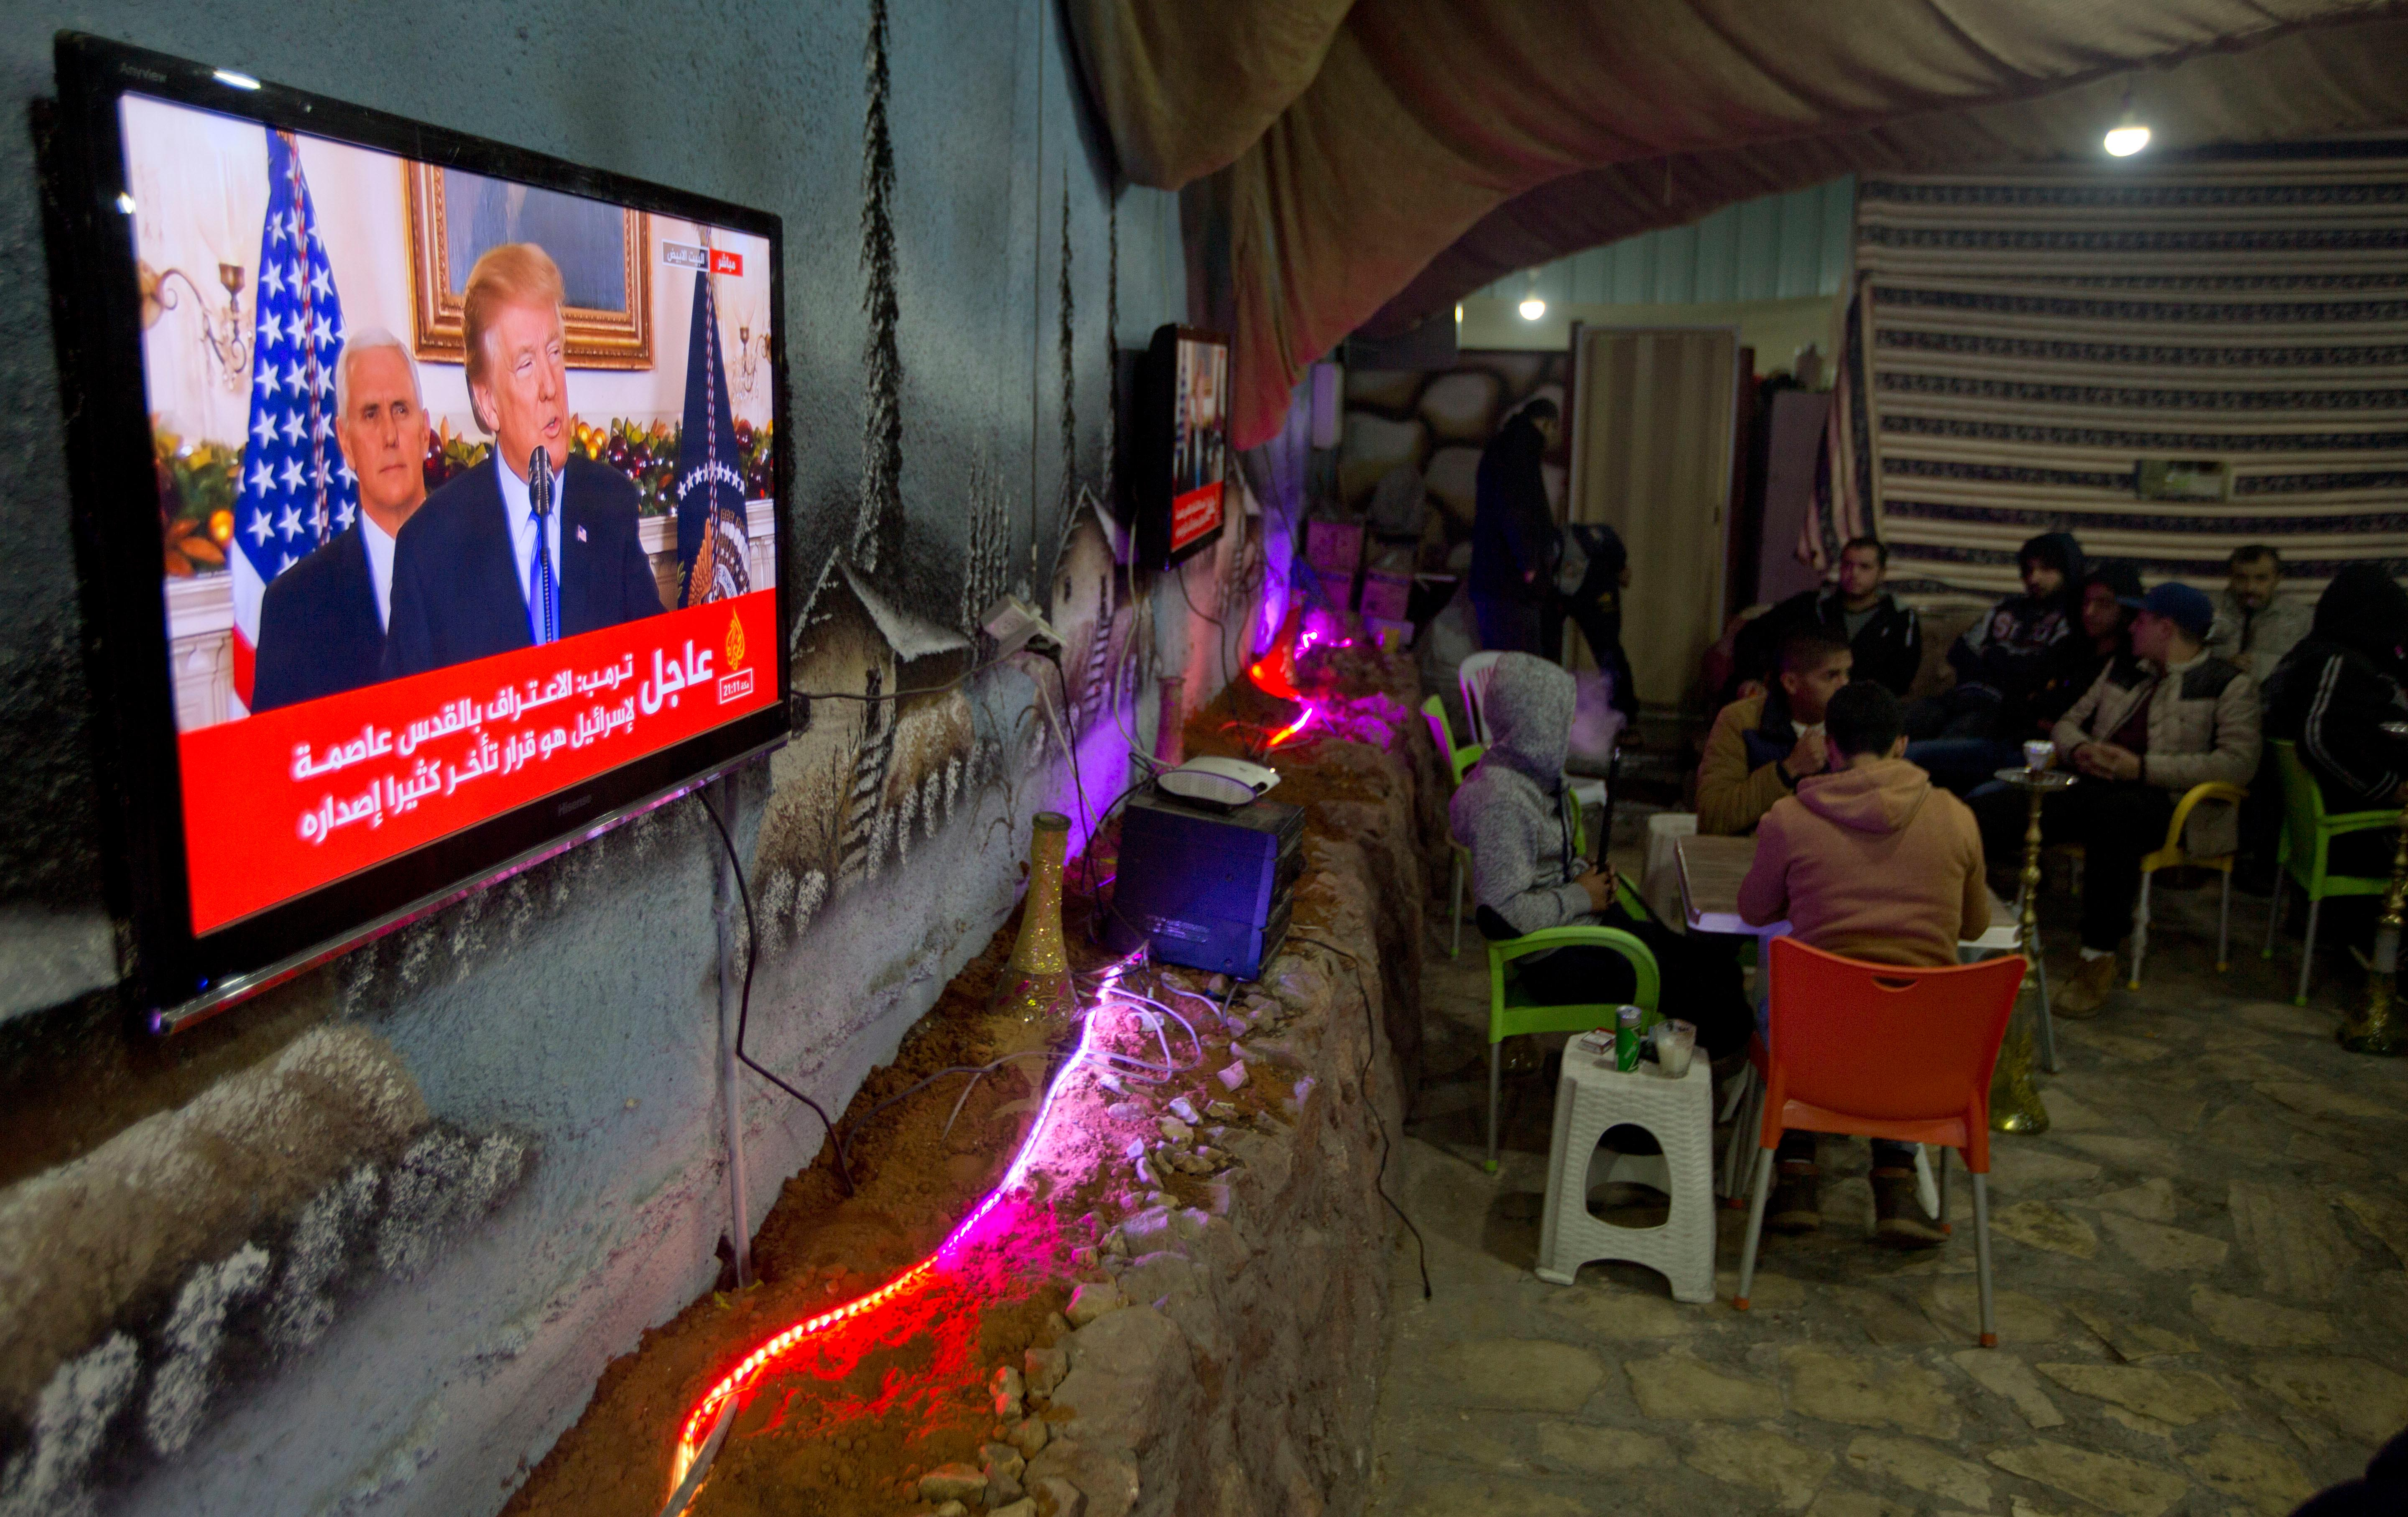 Palestinians play cards during U.S. President Donald Trump's televised speech in the West Bank City of Nablus, Wednesday, Dec. 6, 2017. Defying dire, worldwide warnings, President Donald Trump on Wednesday broke with decades of U.S. and international policy by recognizing Jerusalem as Israel's capital. (AP Photo/Majdi Mohammed)